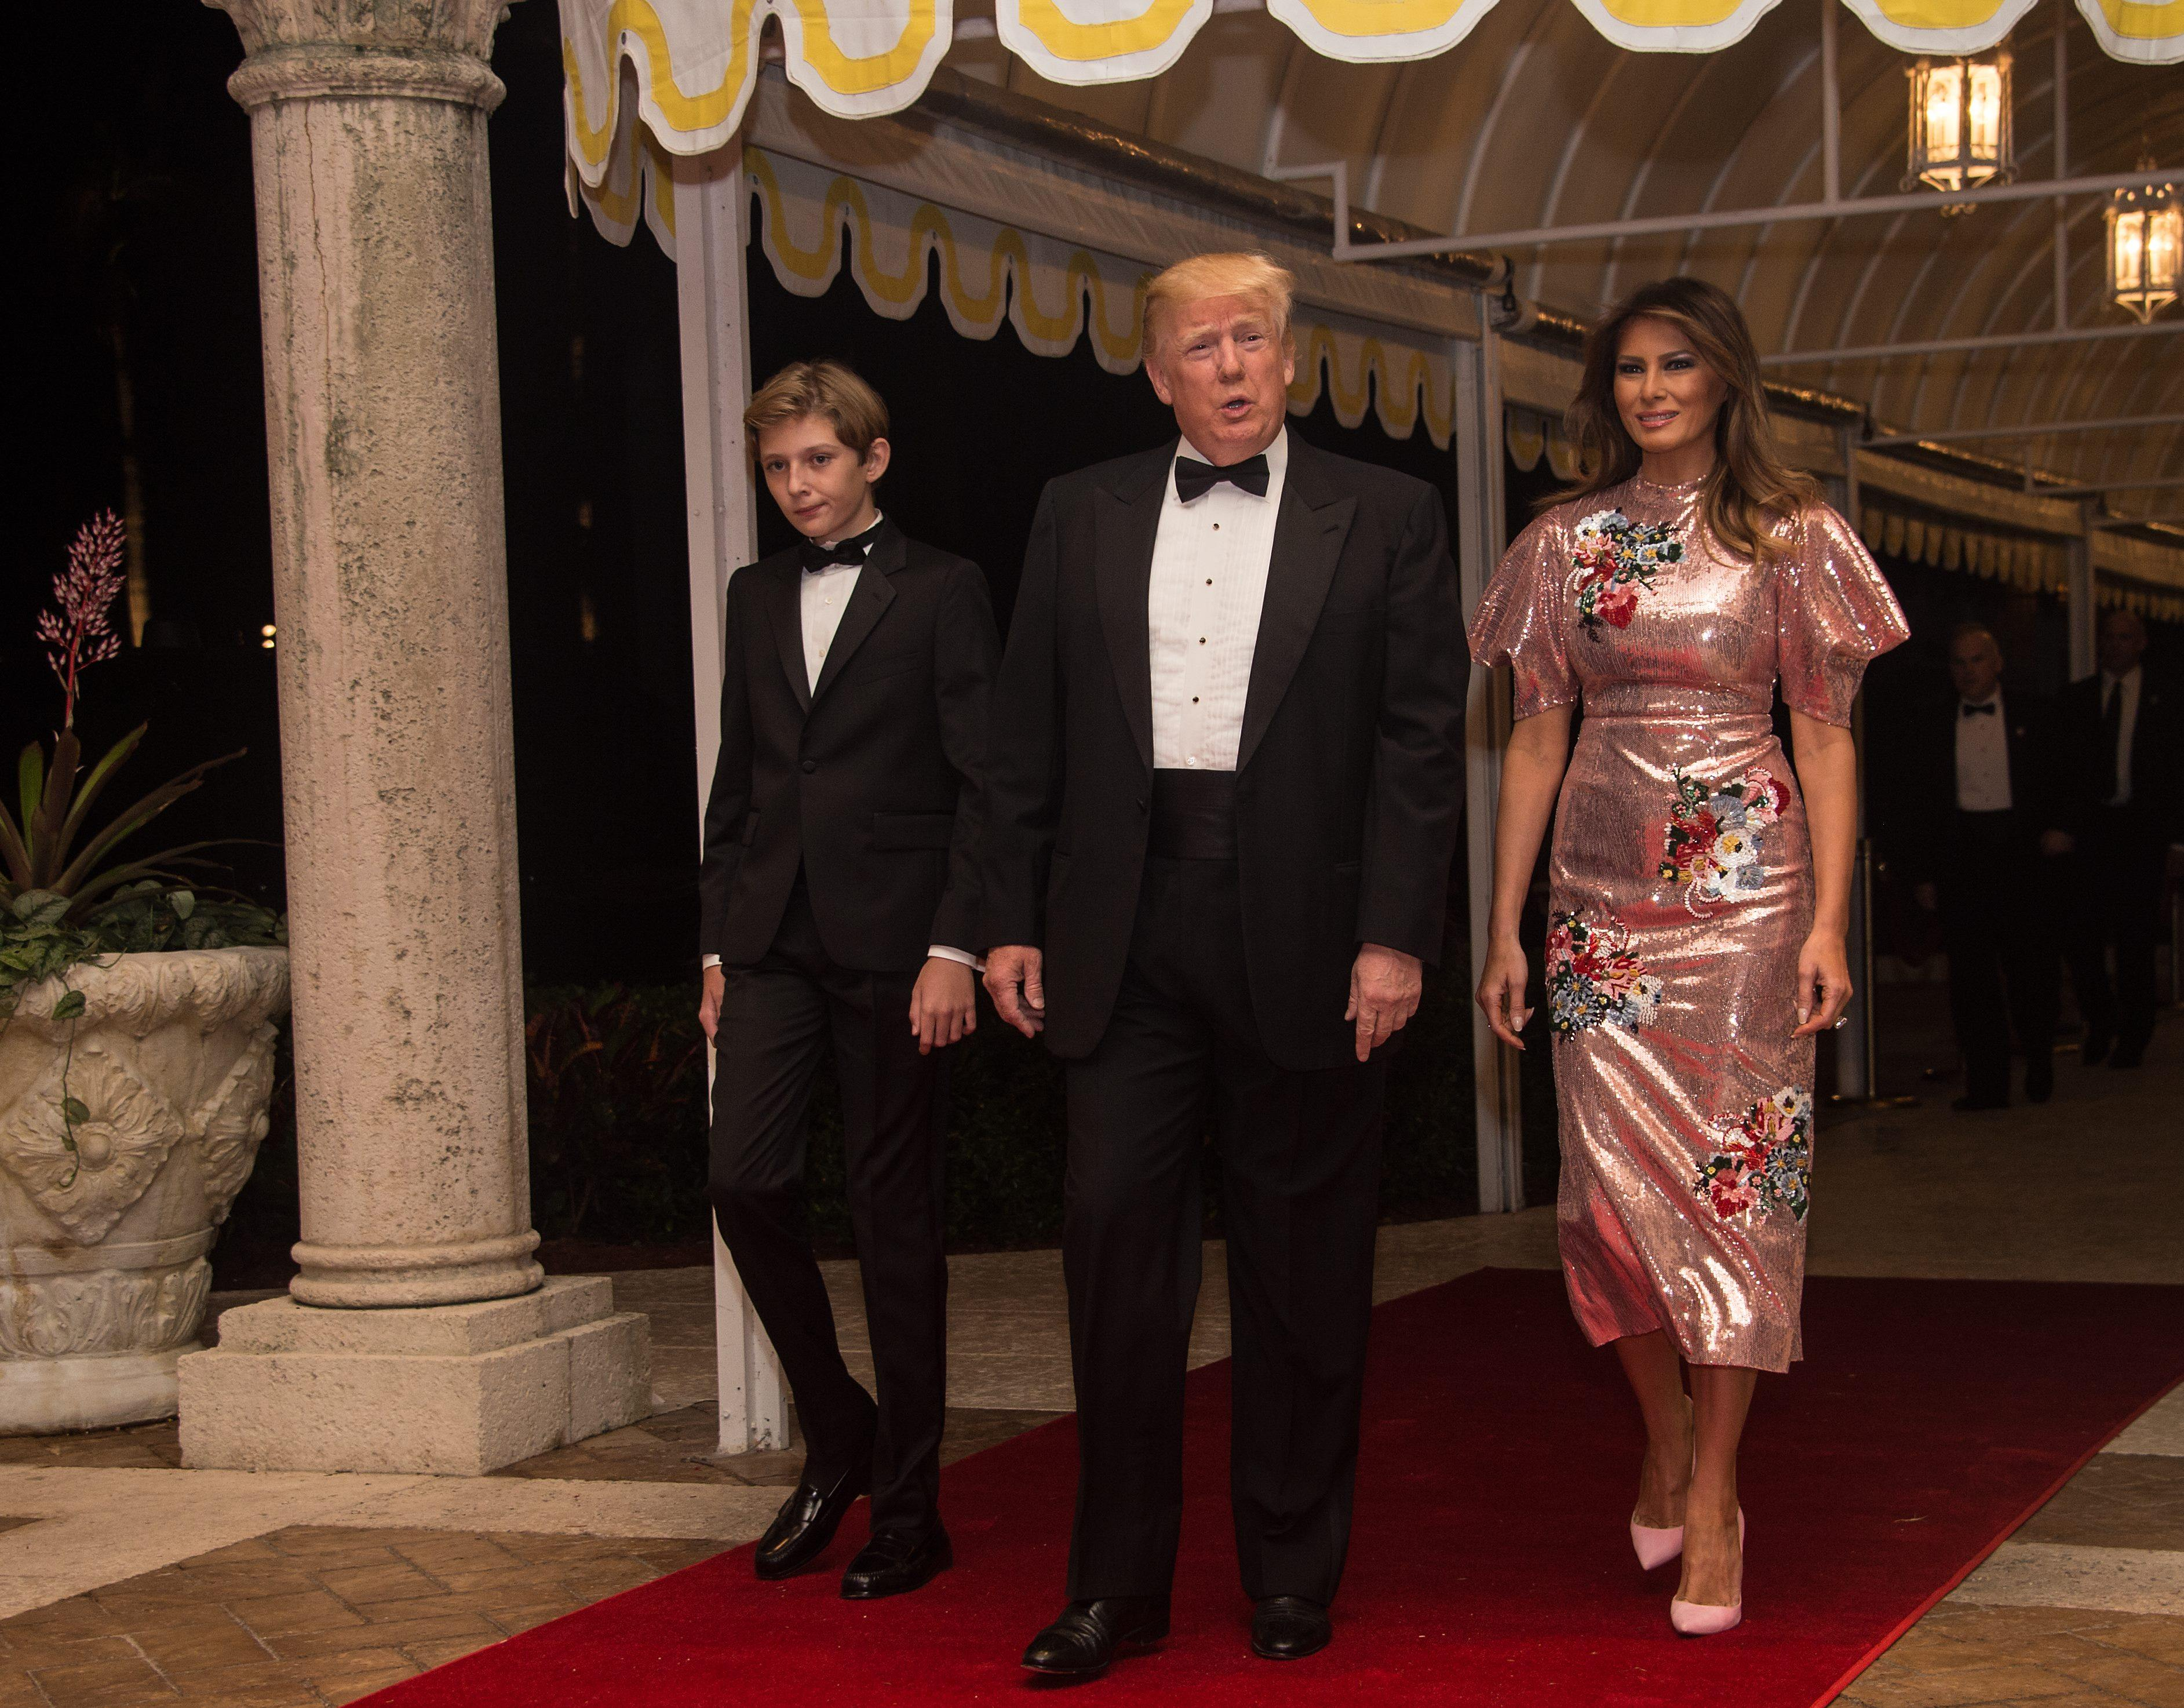 US President Donald Trump, First Lady Melania Trump and their son Barron arrive for a new year's party at Trump's Mar-a-Lago resort